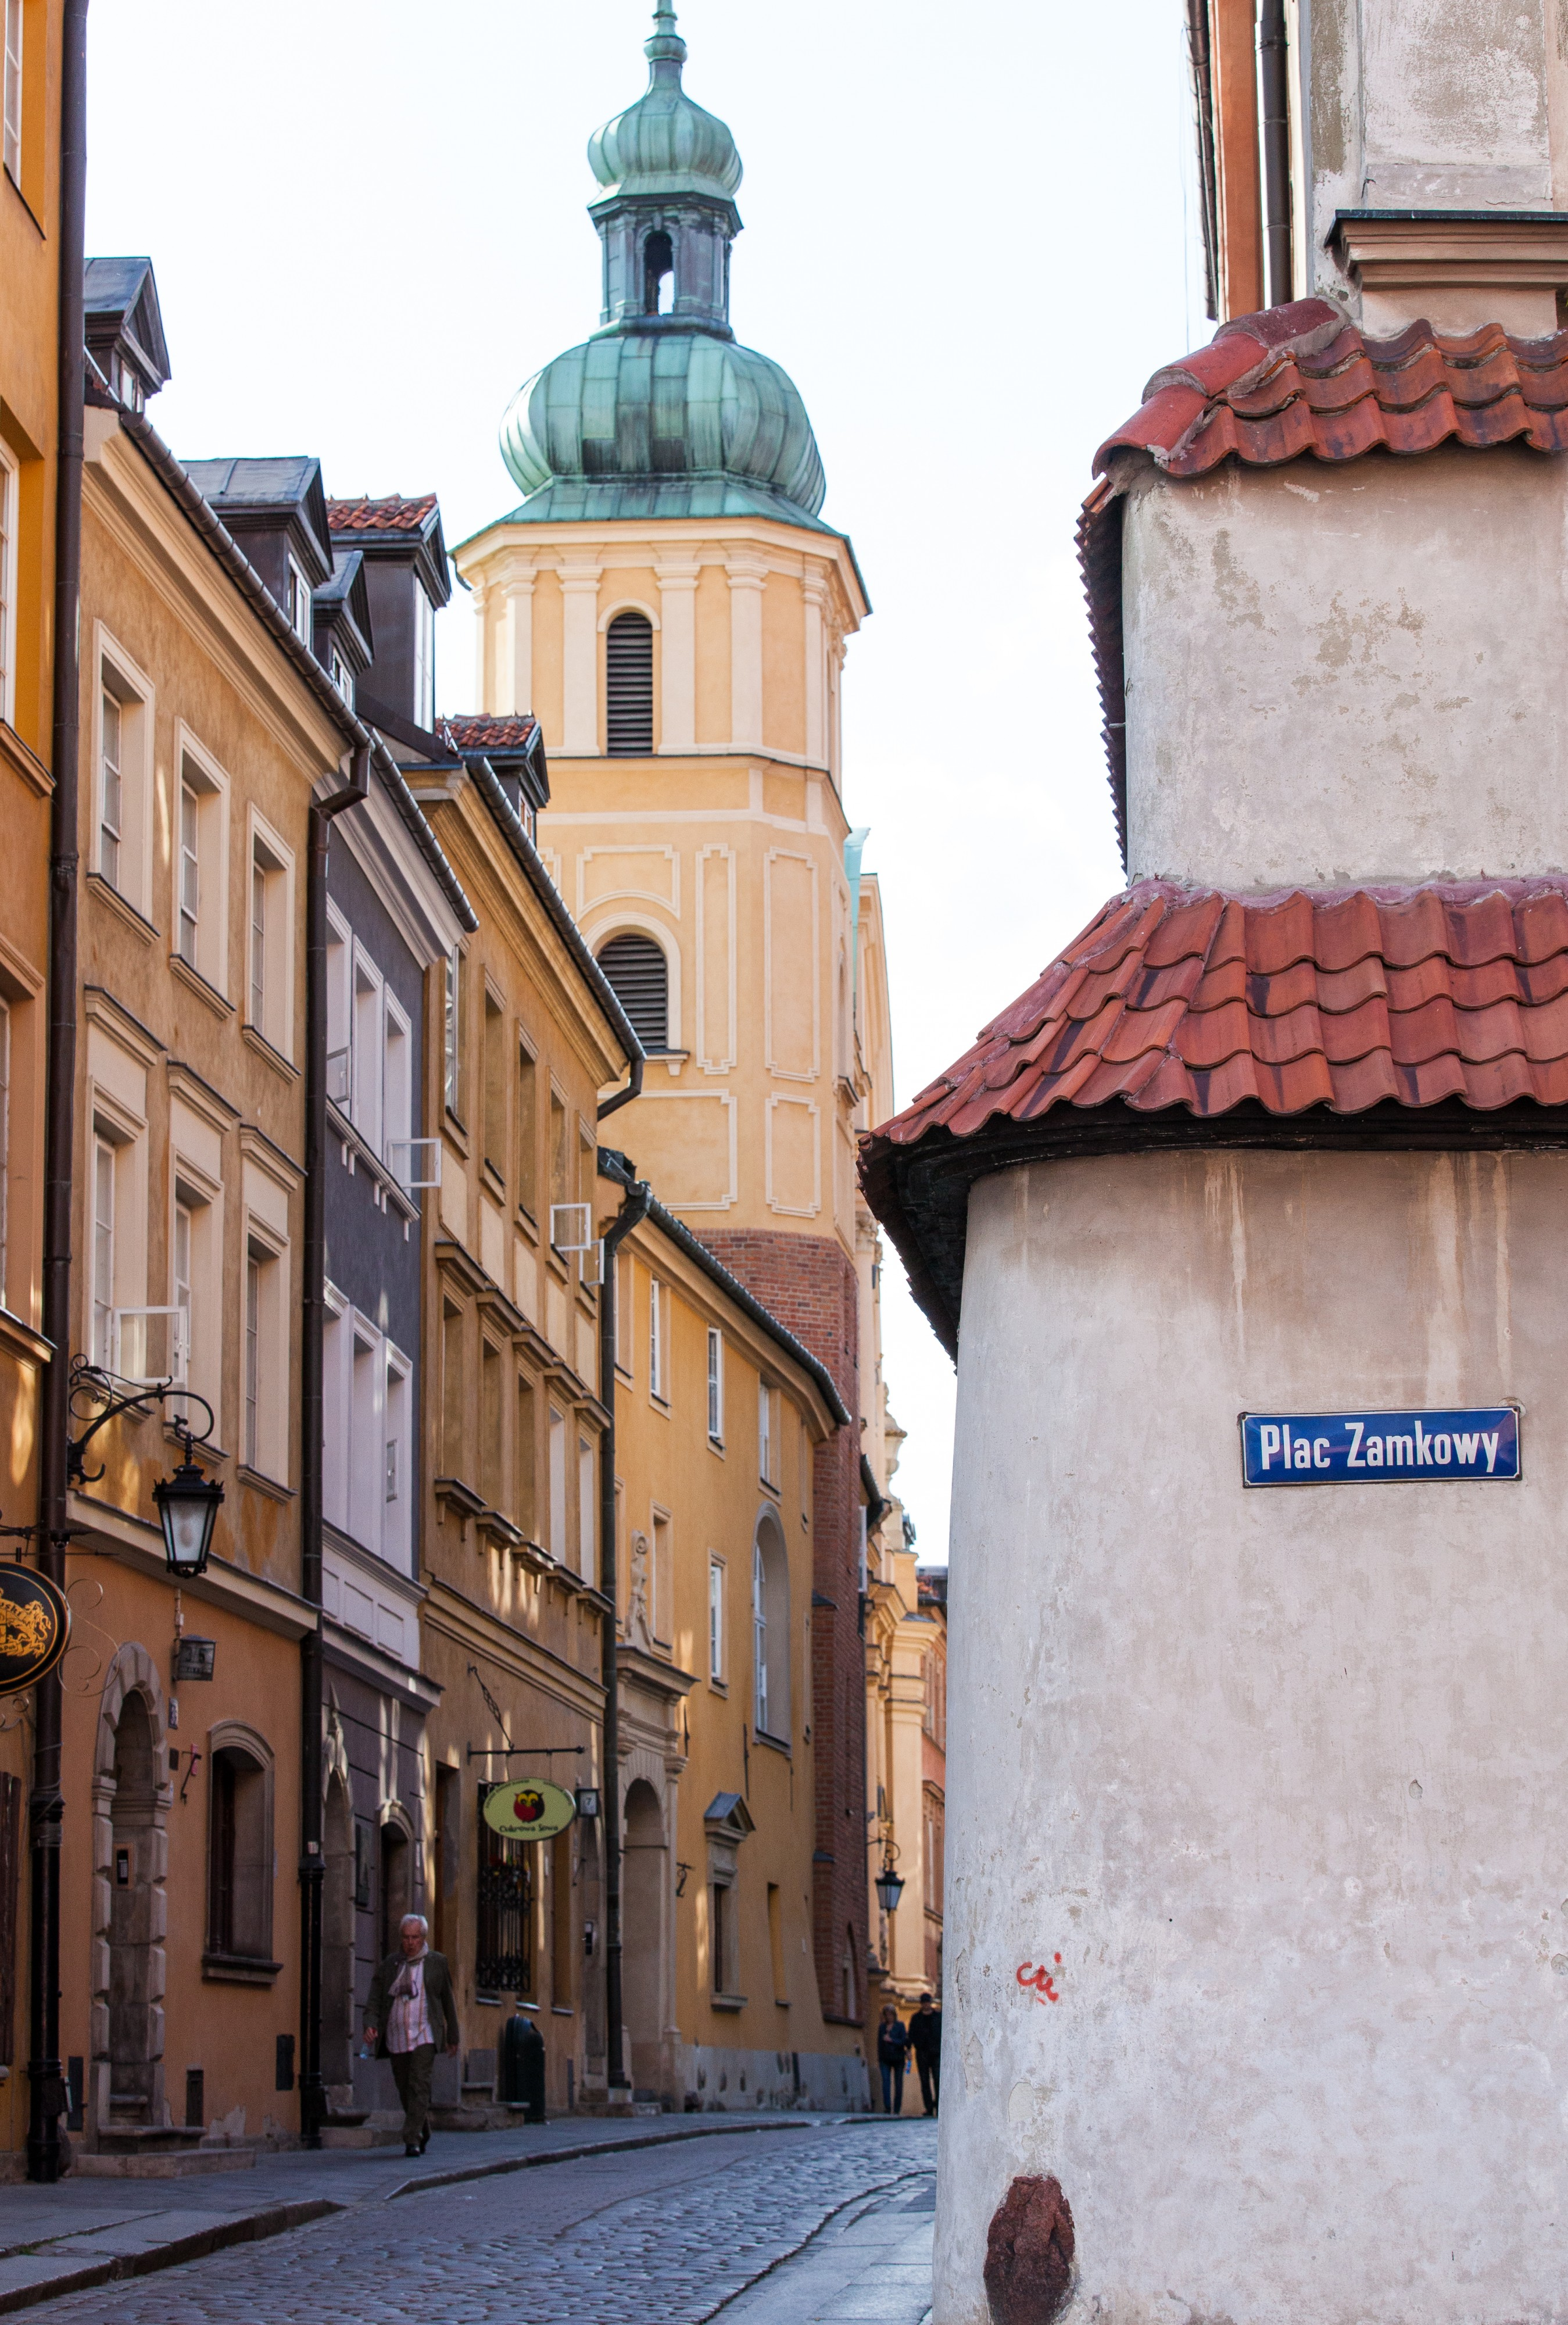 a street near the Castle Square (Plac Zamkowy) in Warsaw (Warszawa), Poland, June 2014, picture 2/9